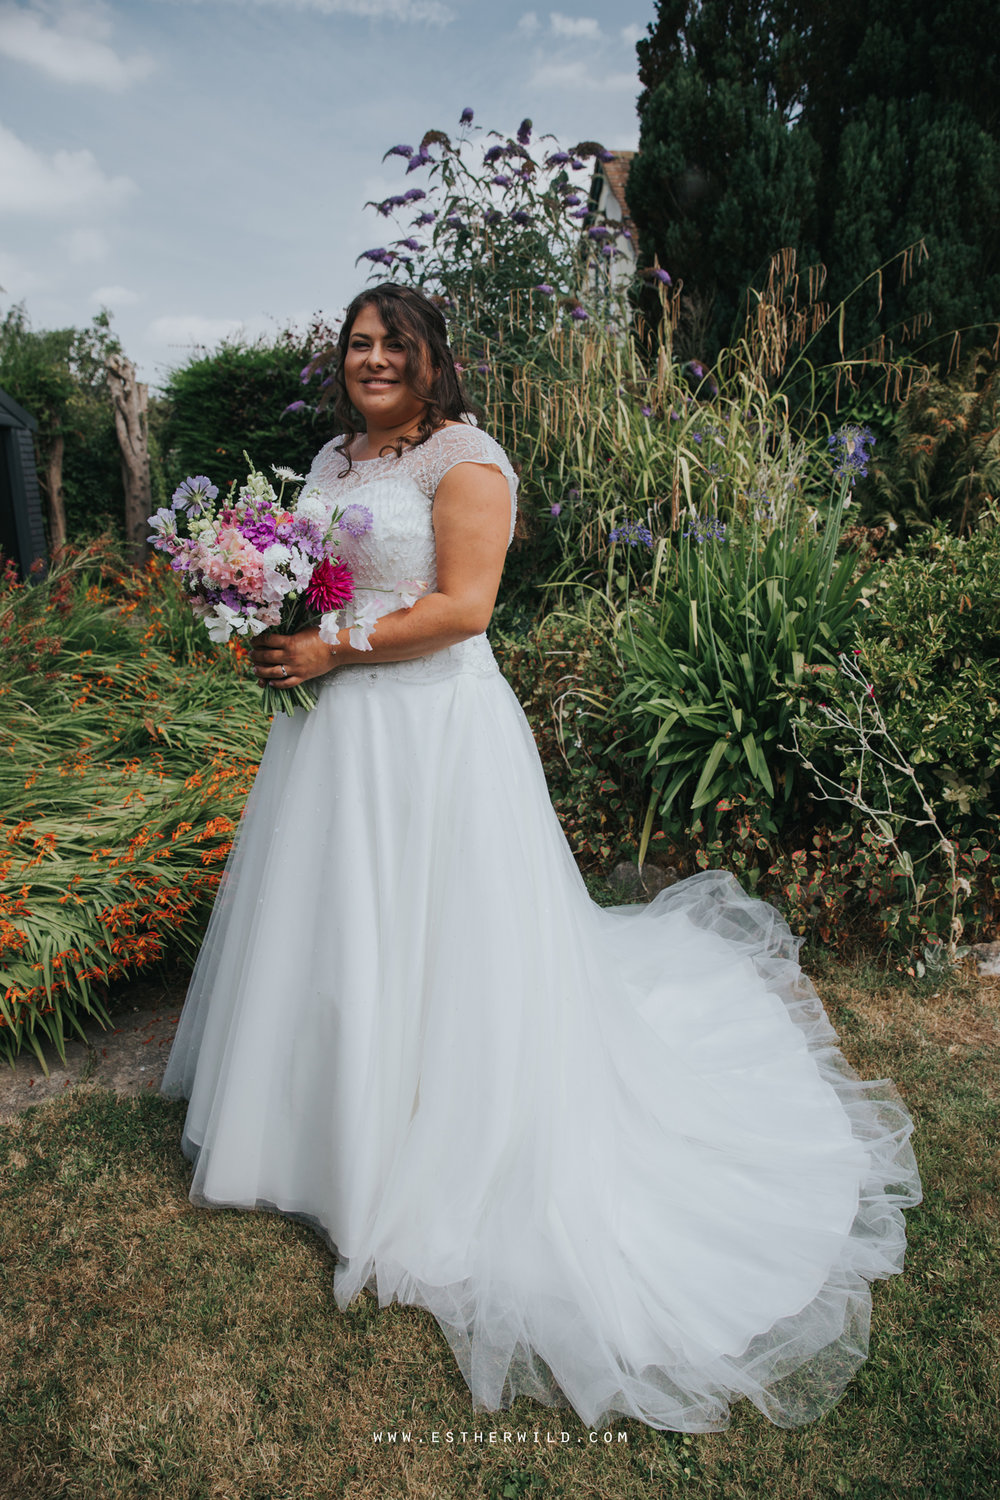 The_Red_Barn_Wedding_Kings_Lynn_Norfolk_IMG_0521.jpg